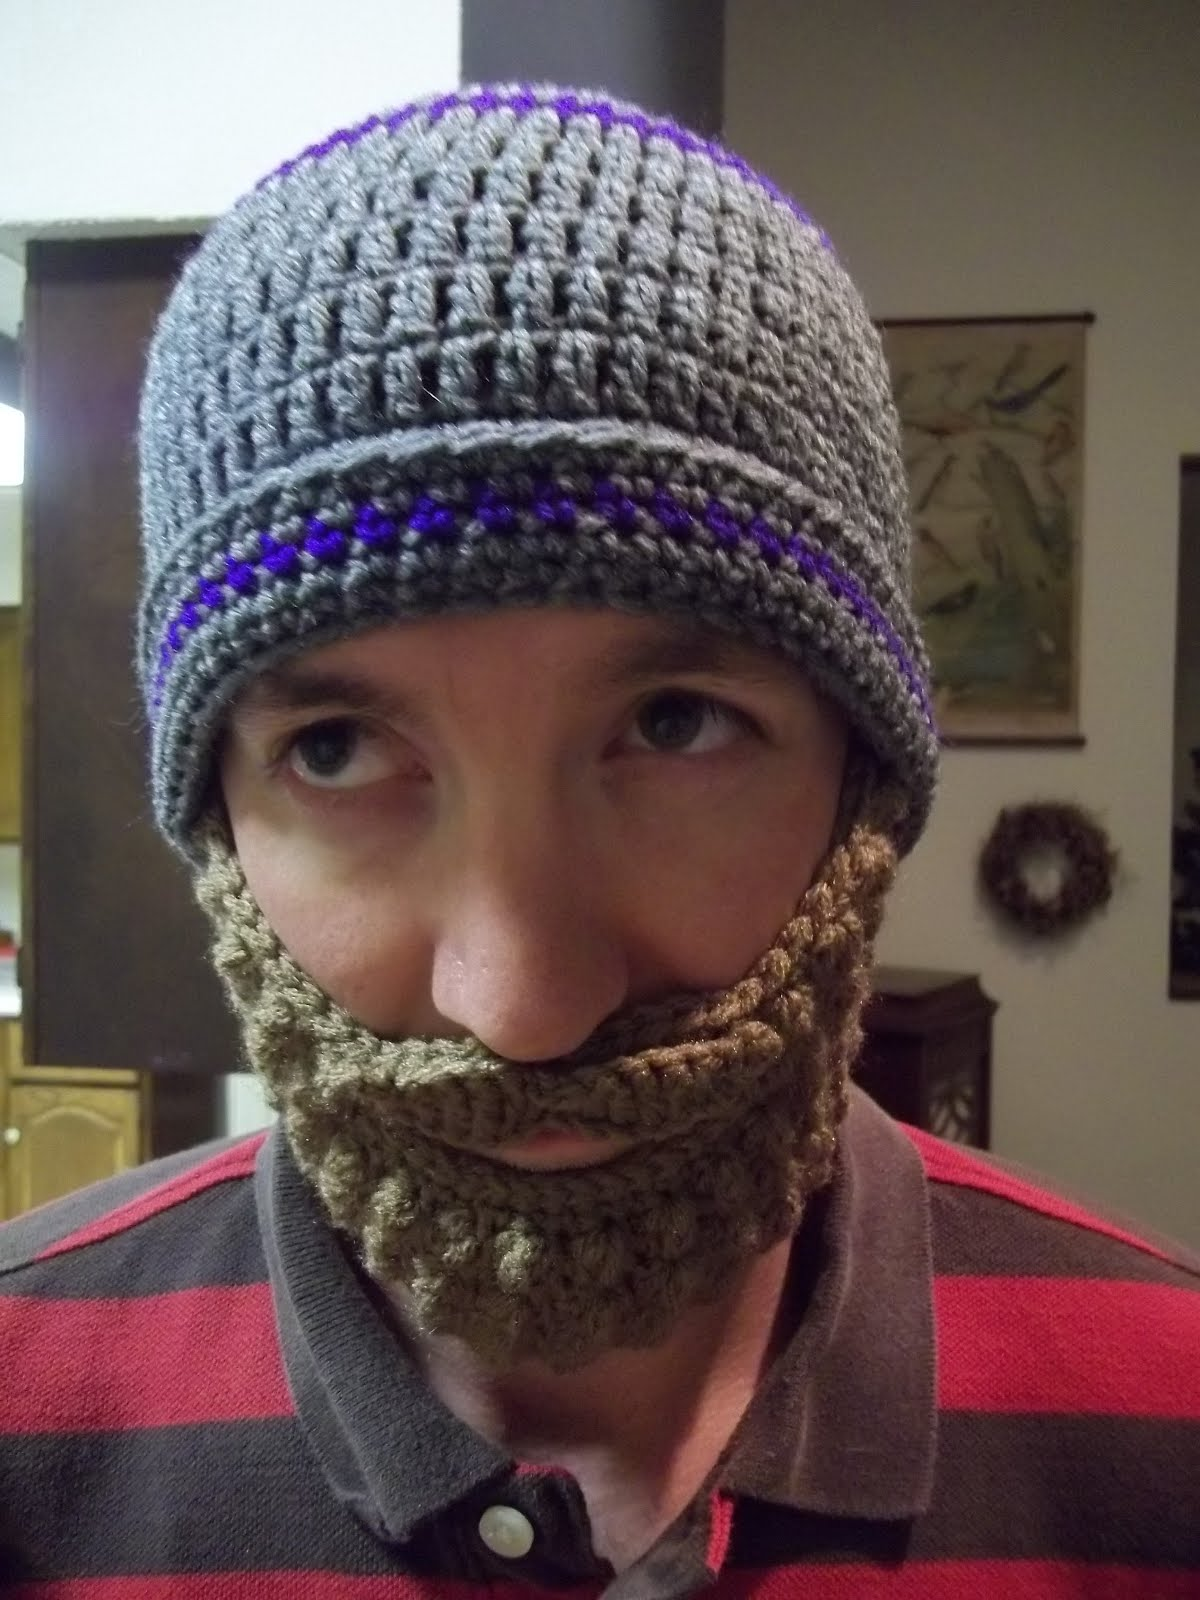 862d33585d1 Our 7 Acres  The Beard Hat - Crochet Tutorial